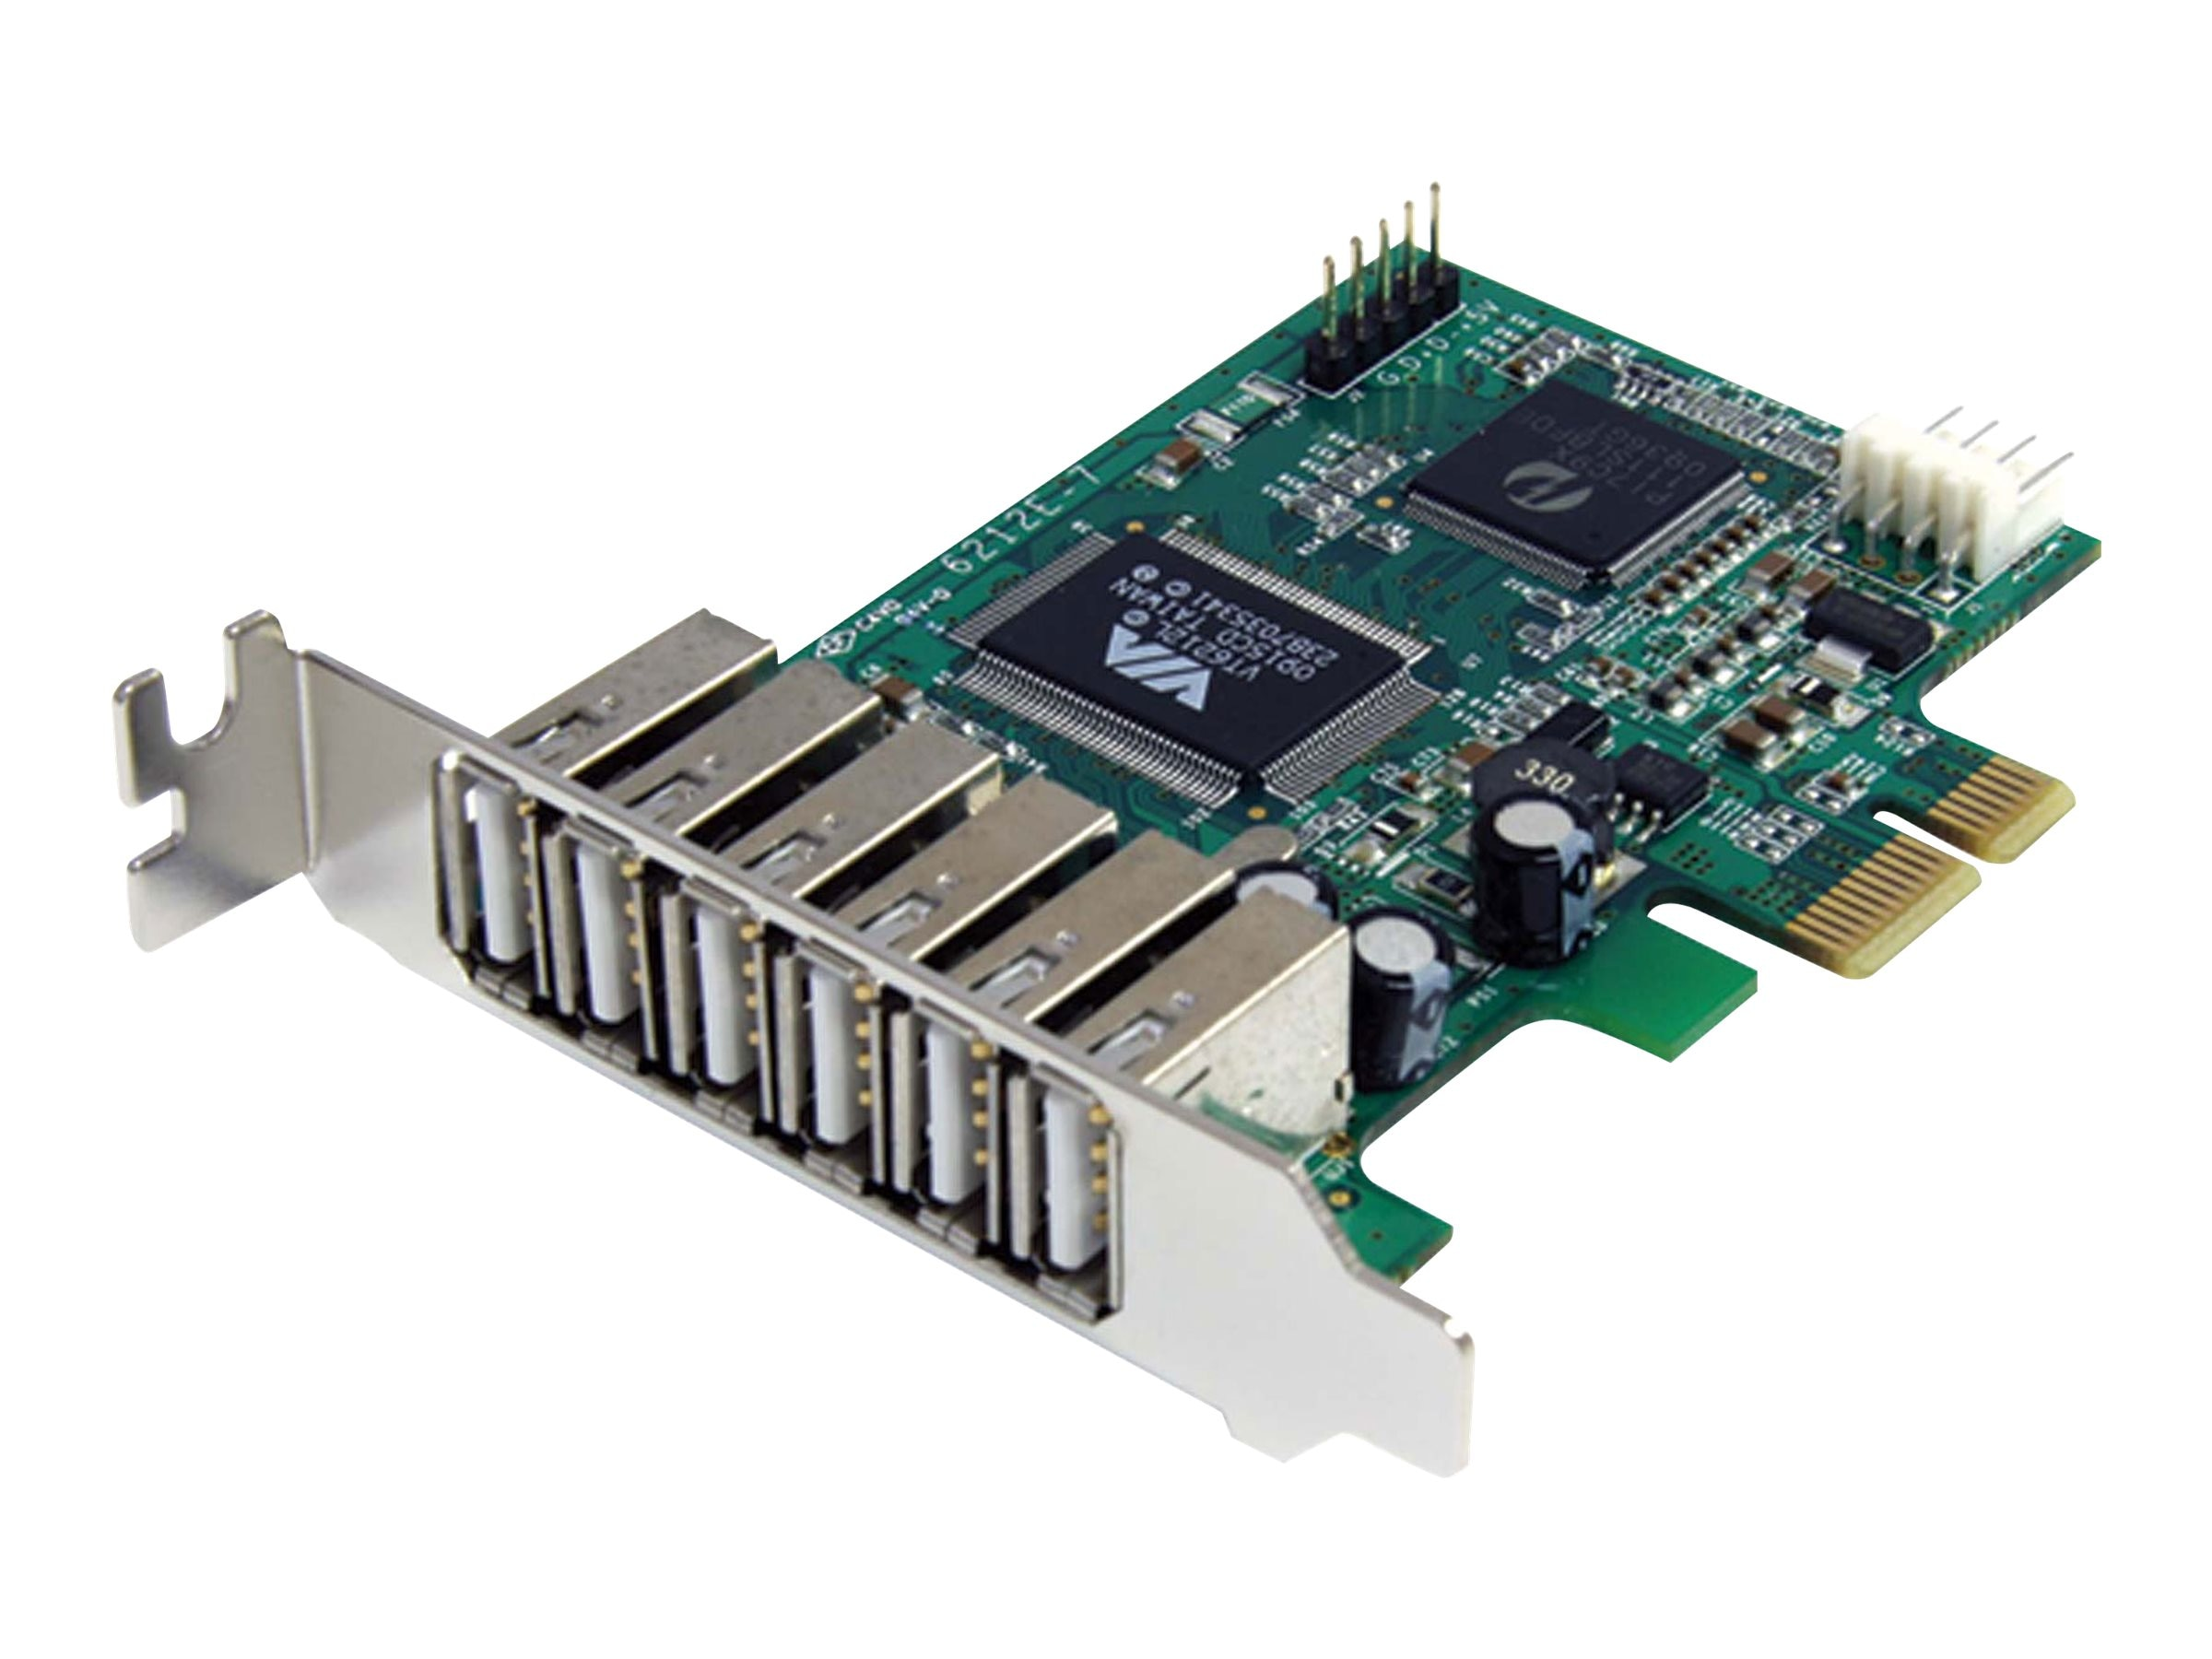 StarTech.com 7-port PCI Express Low Profile High Speed USB 2.0 Adapter Card, PEXUSB7LP, 11399731, Controller Cards & I/O Boards